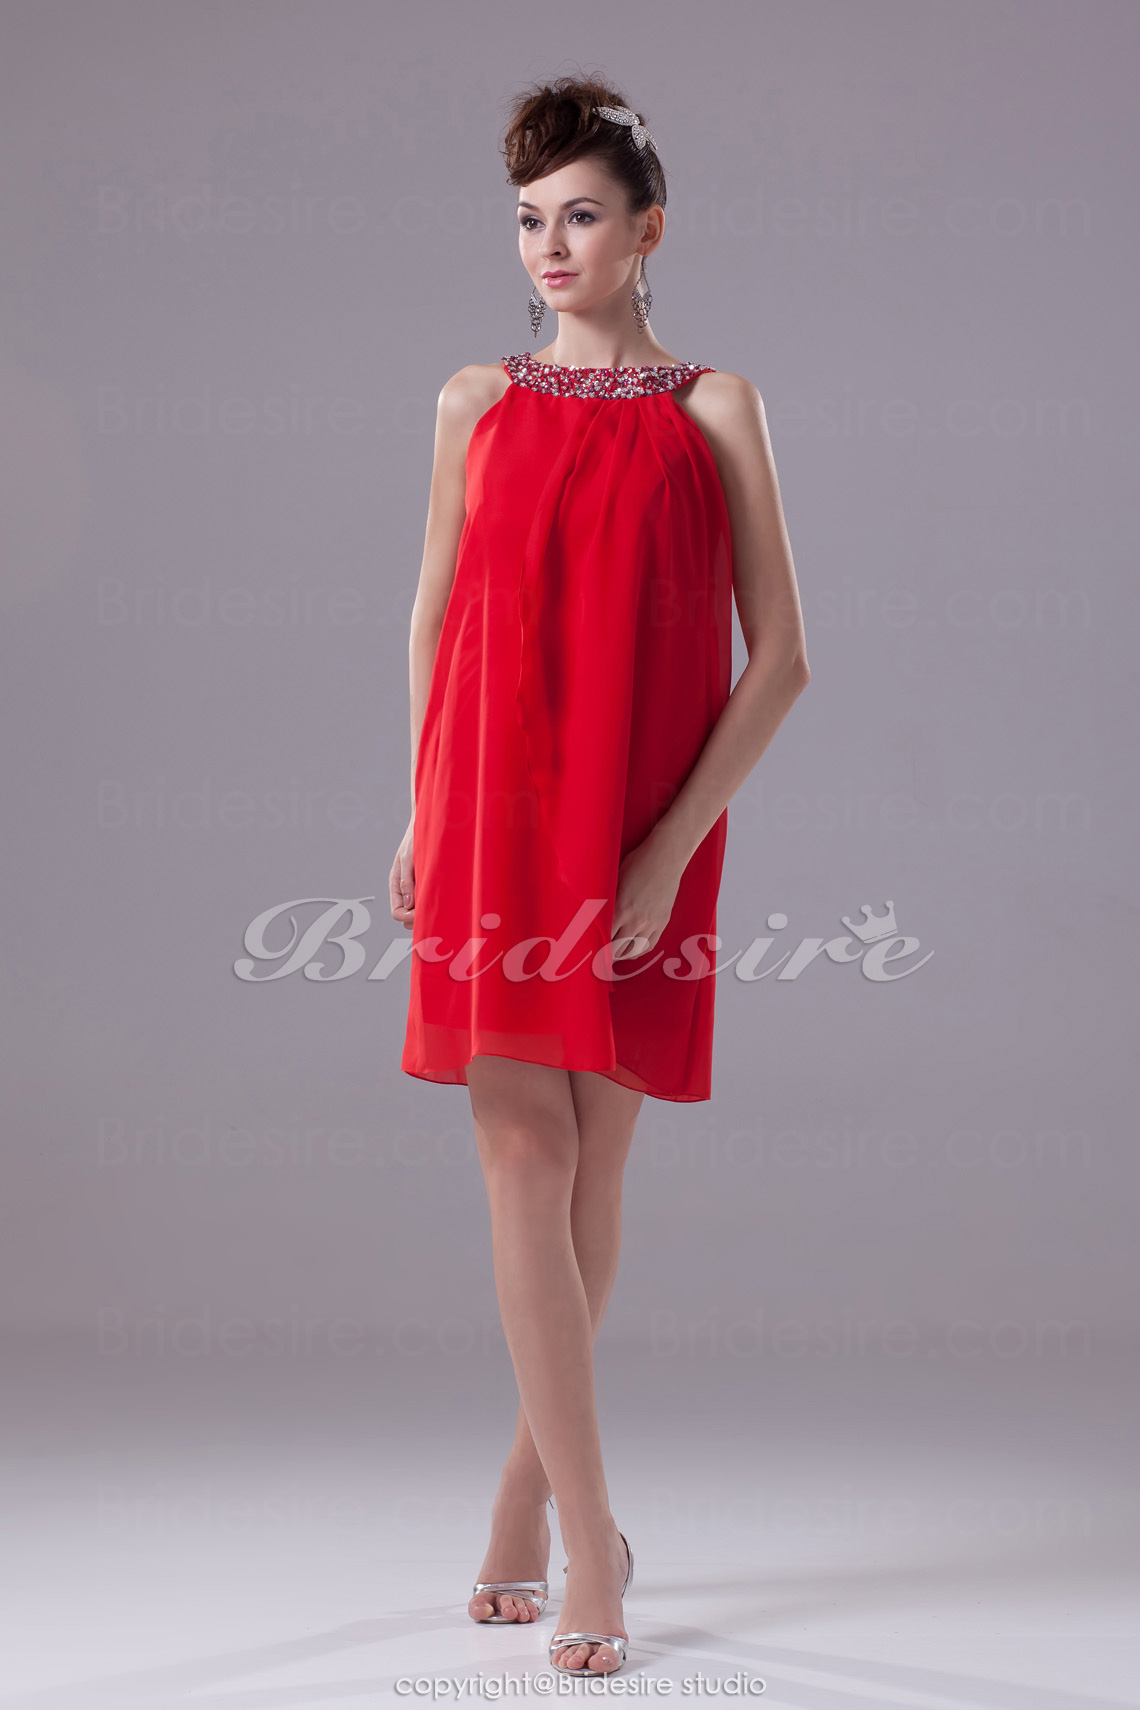 Sheath/Column Scoop Short/Mini Sleeveless Chiffon Dress